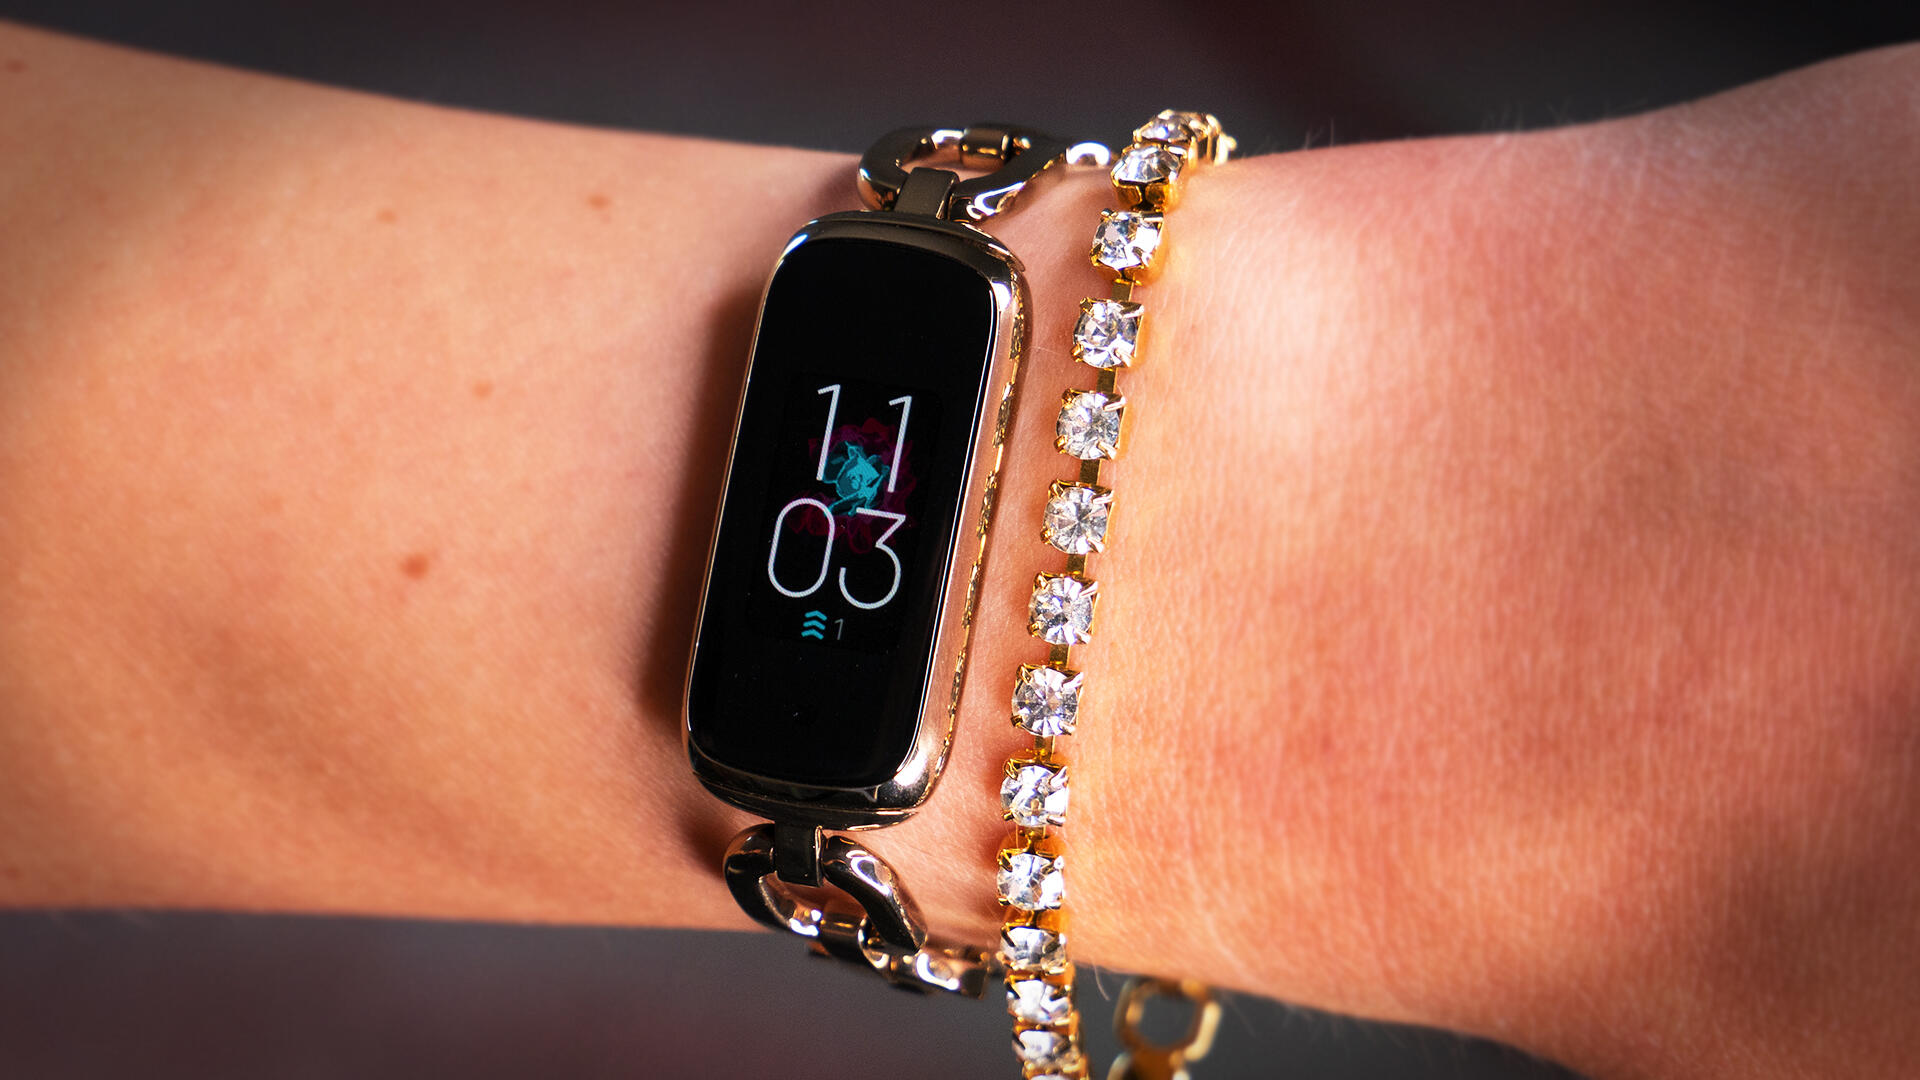 Video: The Fitbit Luxe matches style with substance